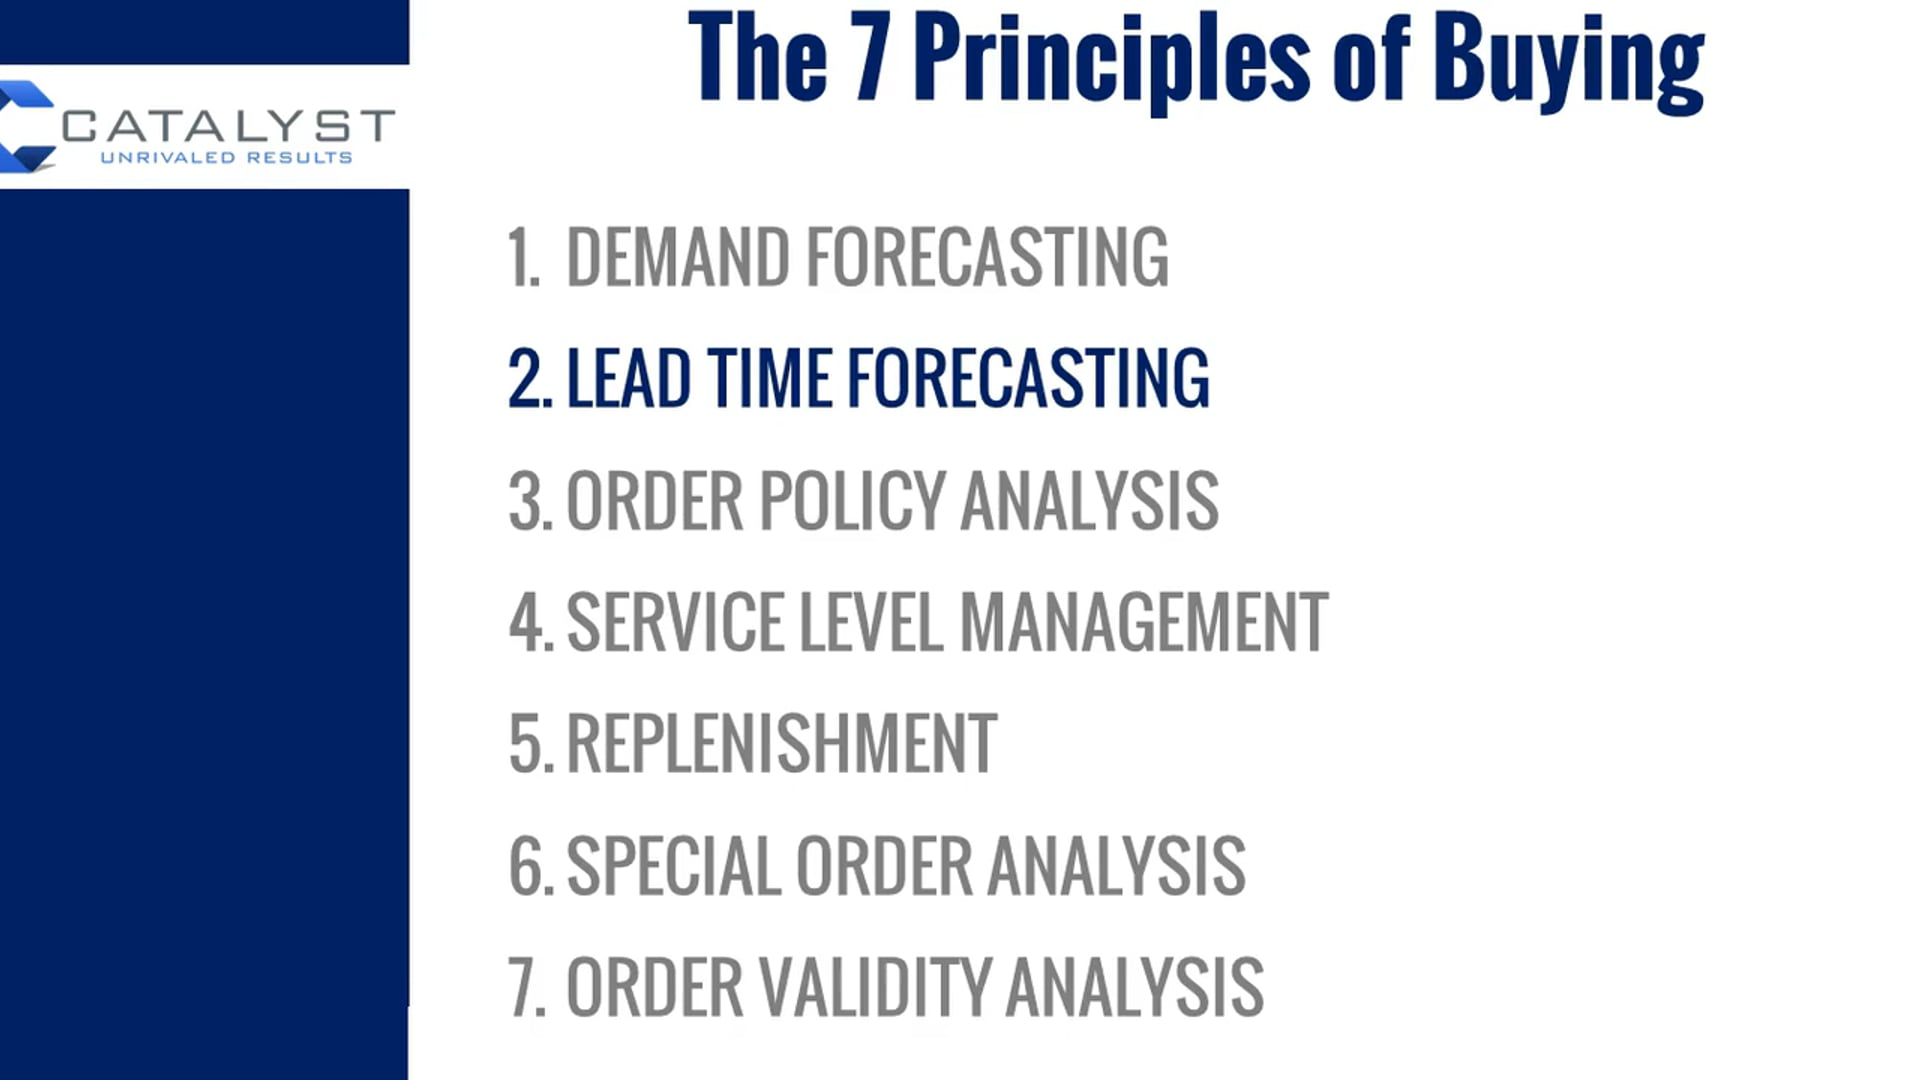 2 LEAD TIME FORECASTING